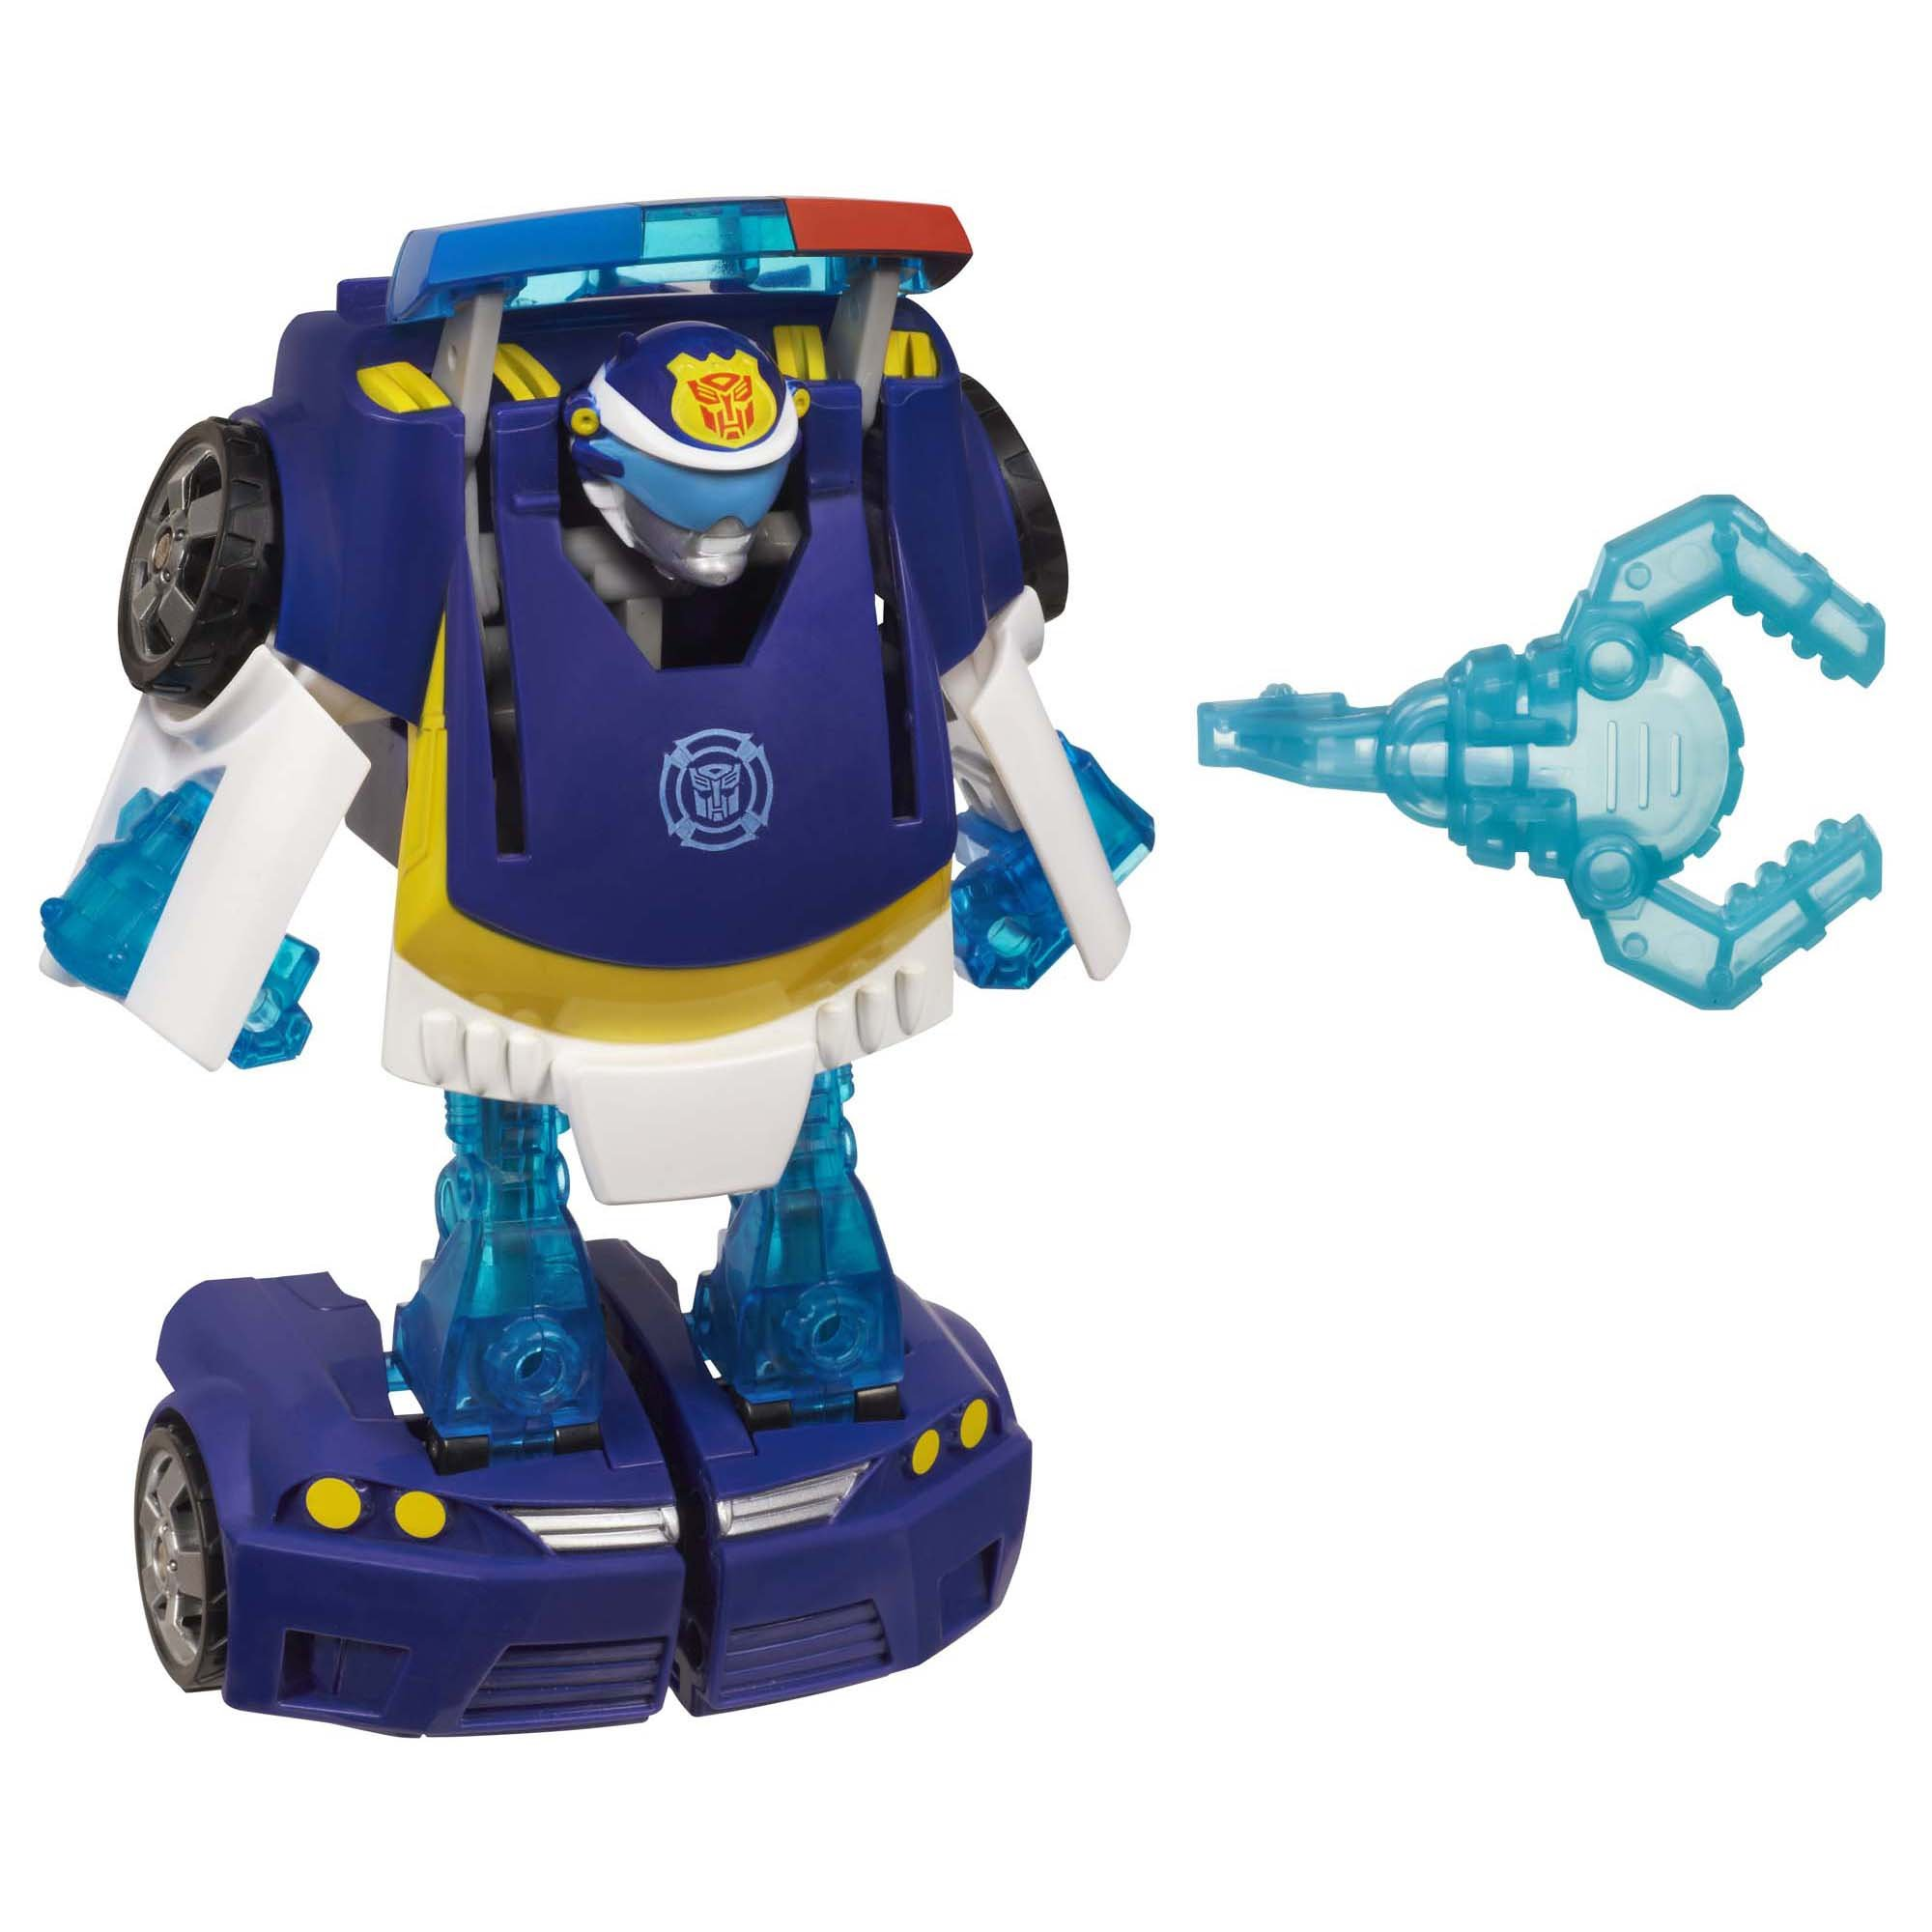 Transformers Playskool Heroes Rescue Bots Energize Chase the Police-Bot Figure